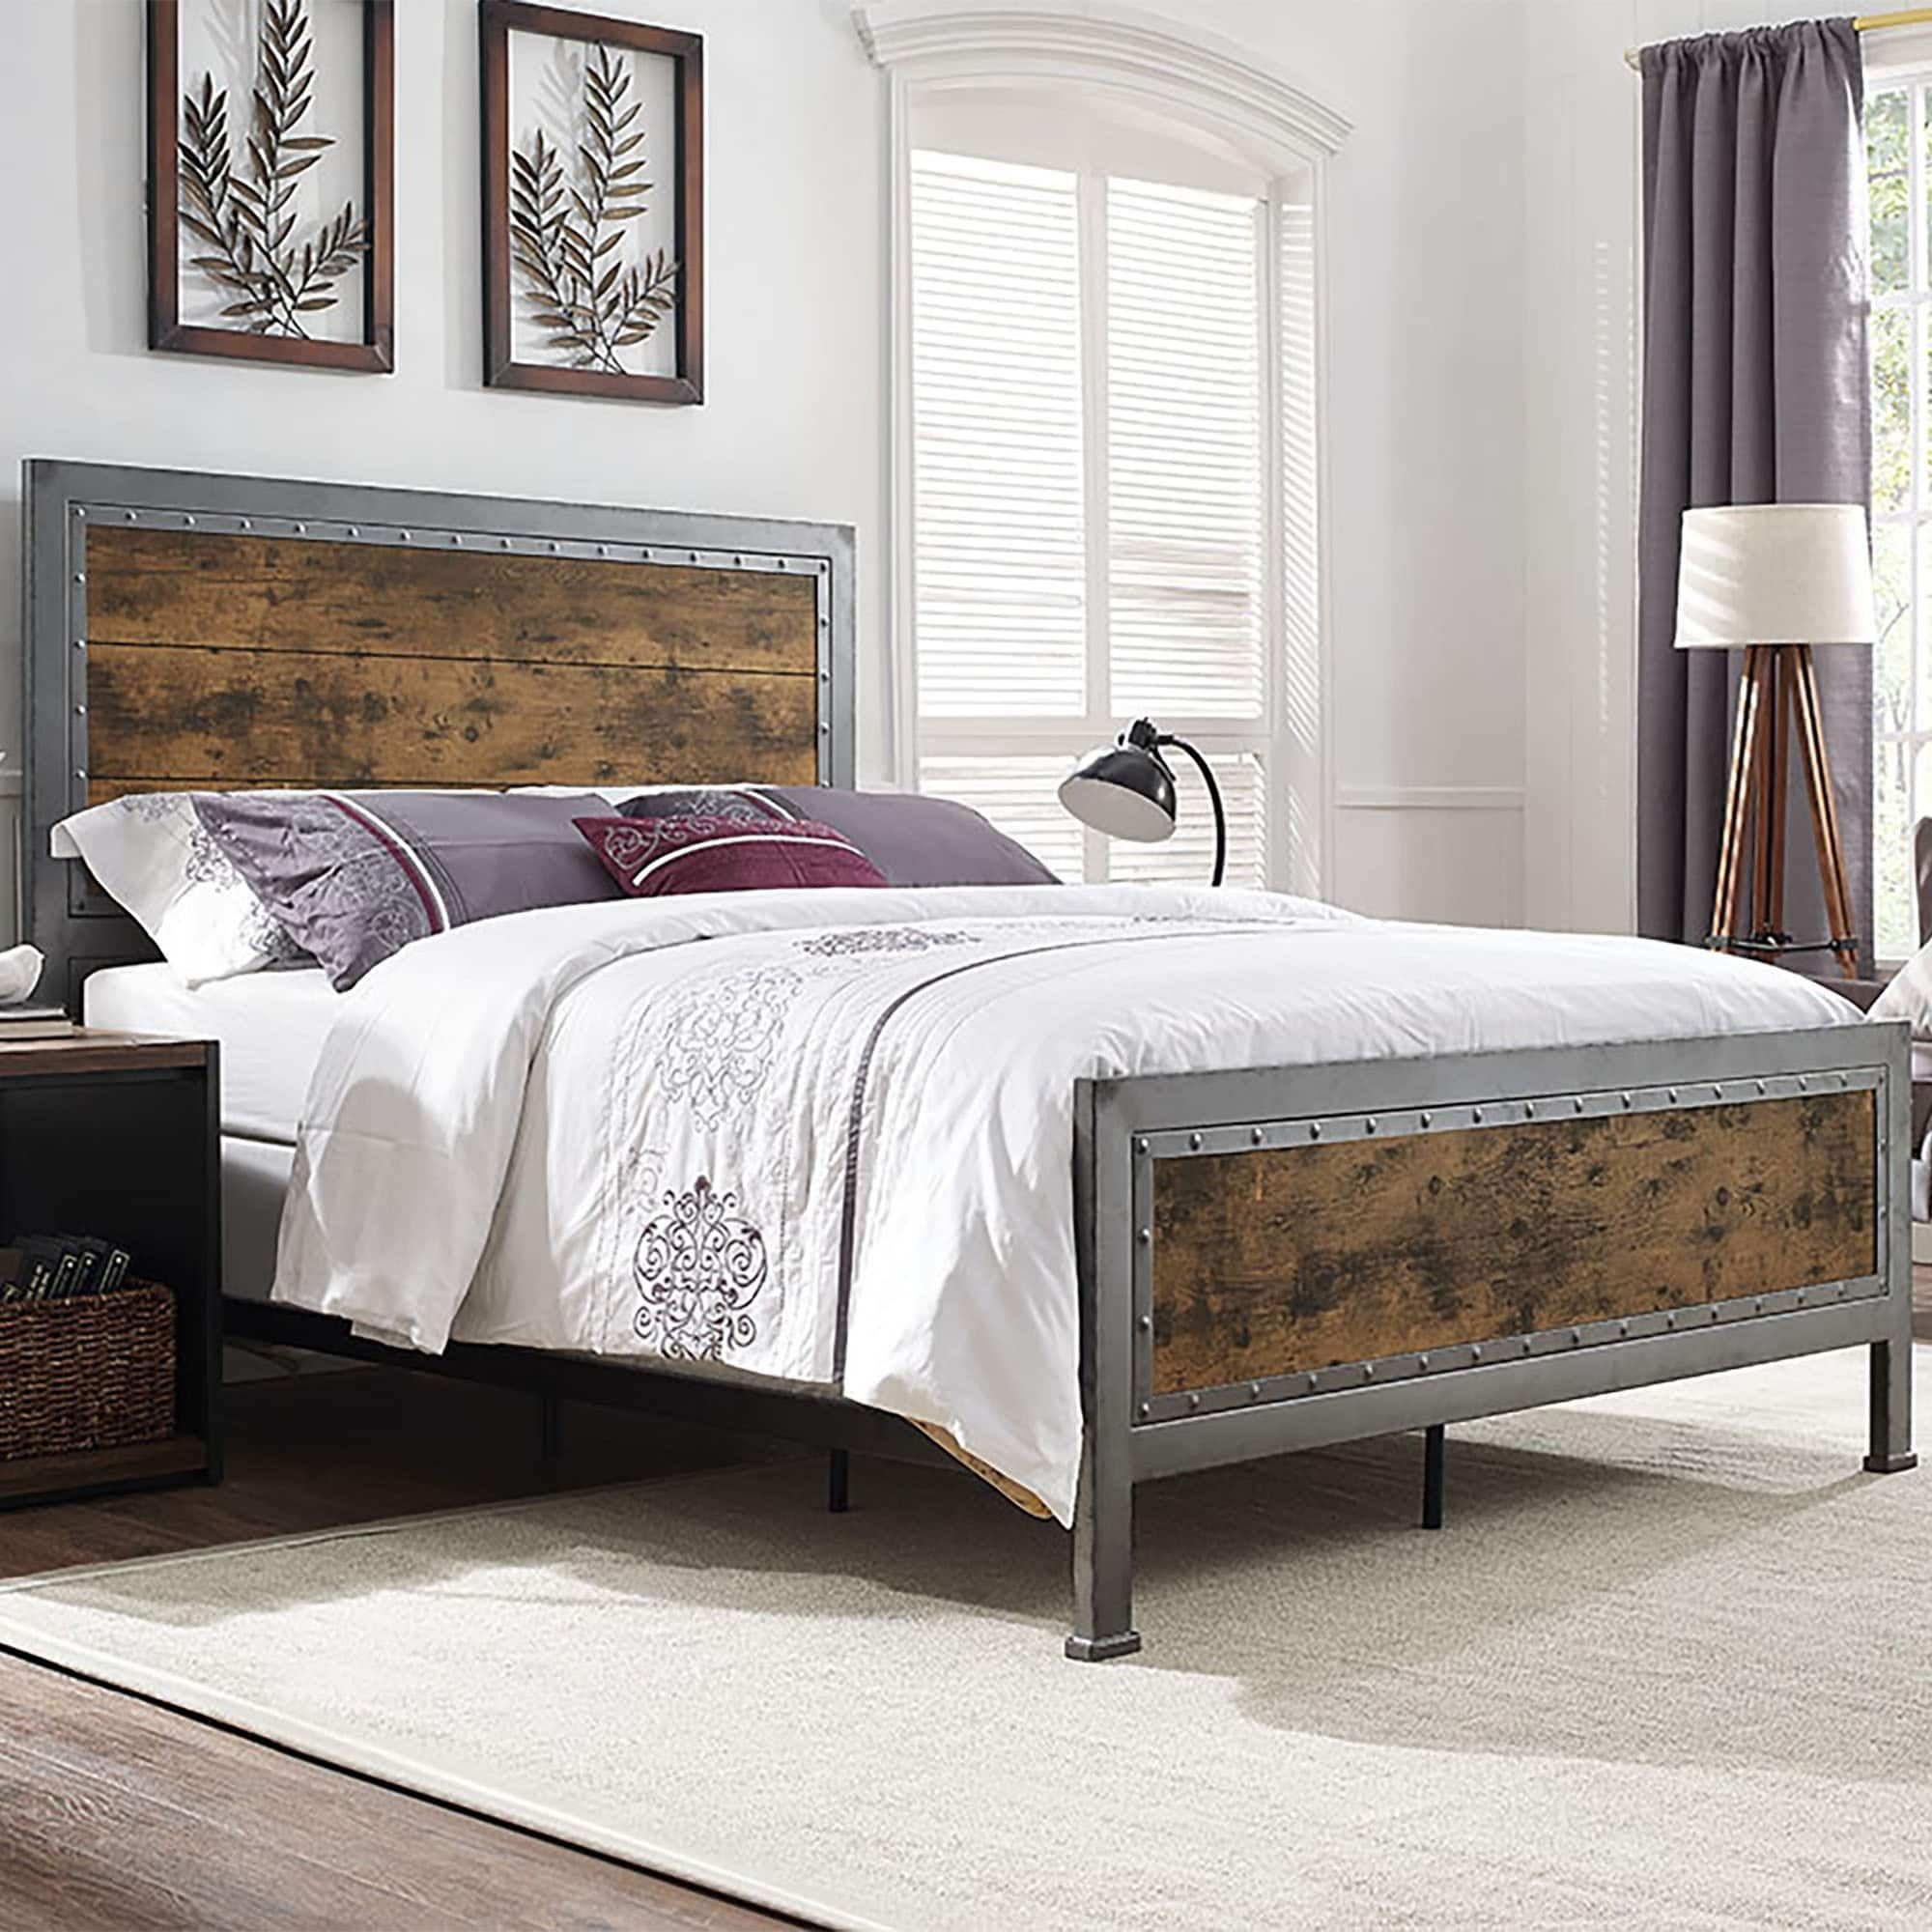 Queen Size Industrial Brown Wood And Metal Bed  Free